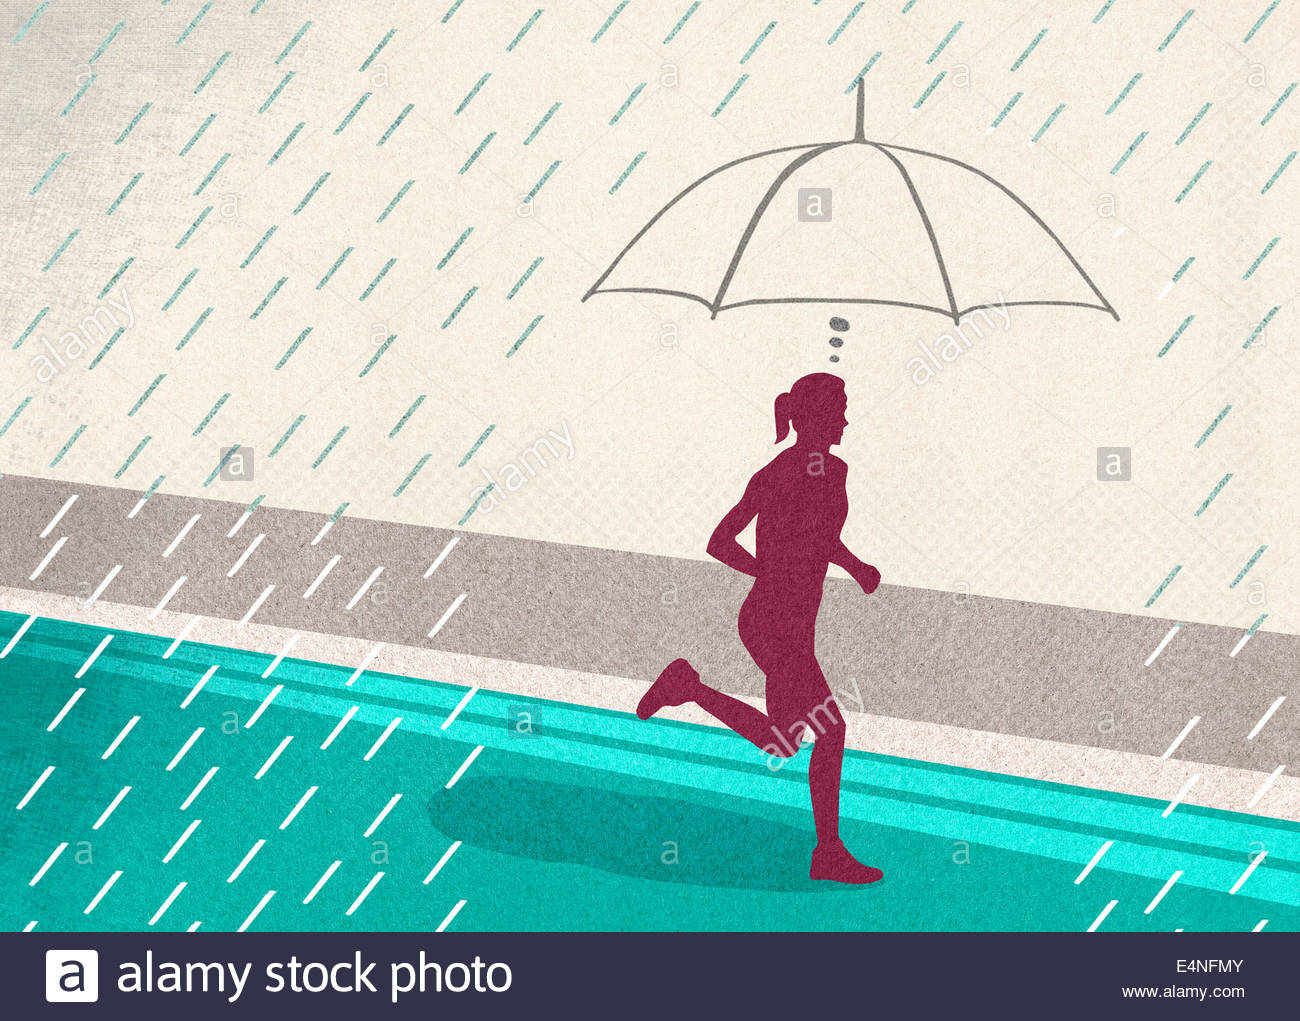 Focused woman protected from rain by imagining umbrella while running - Stock Image